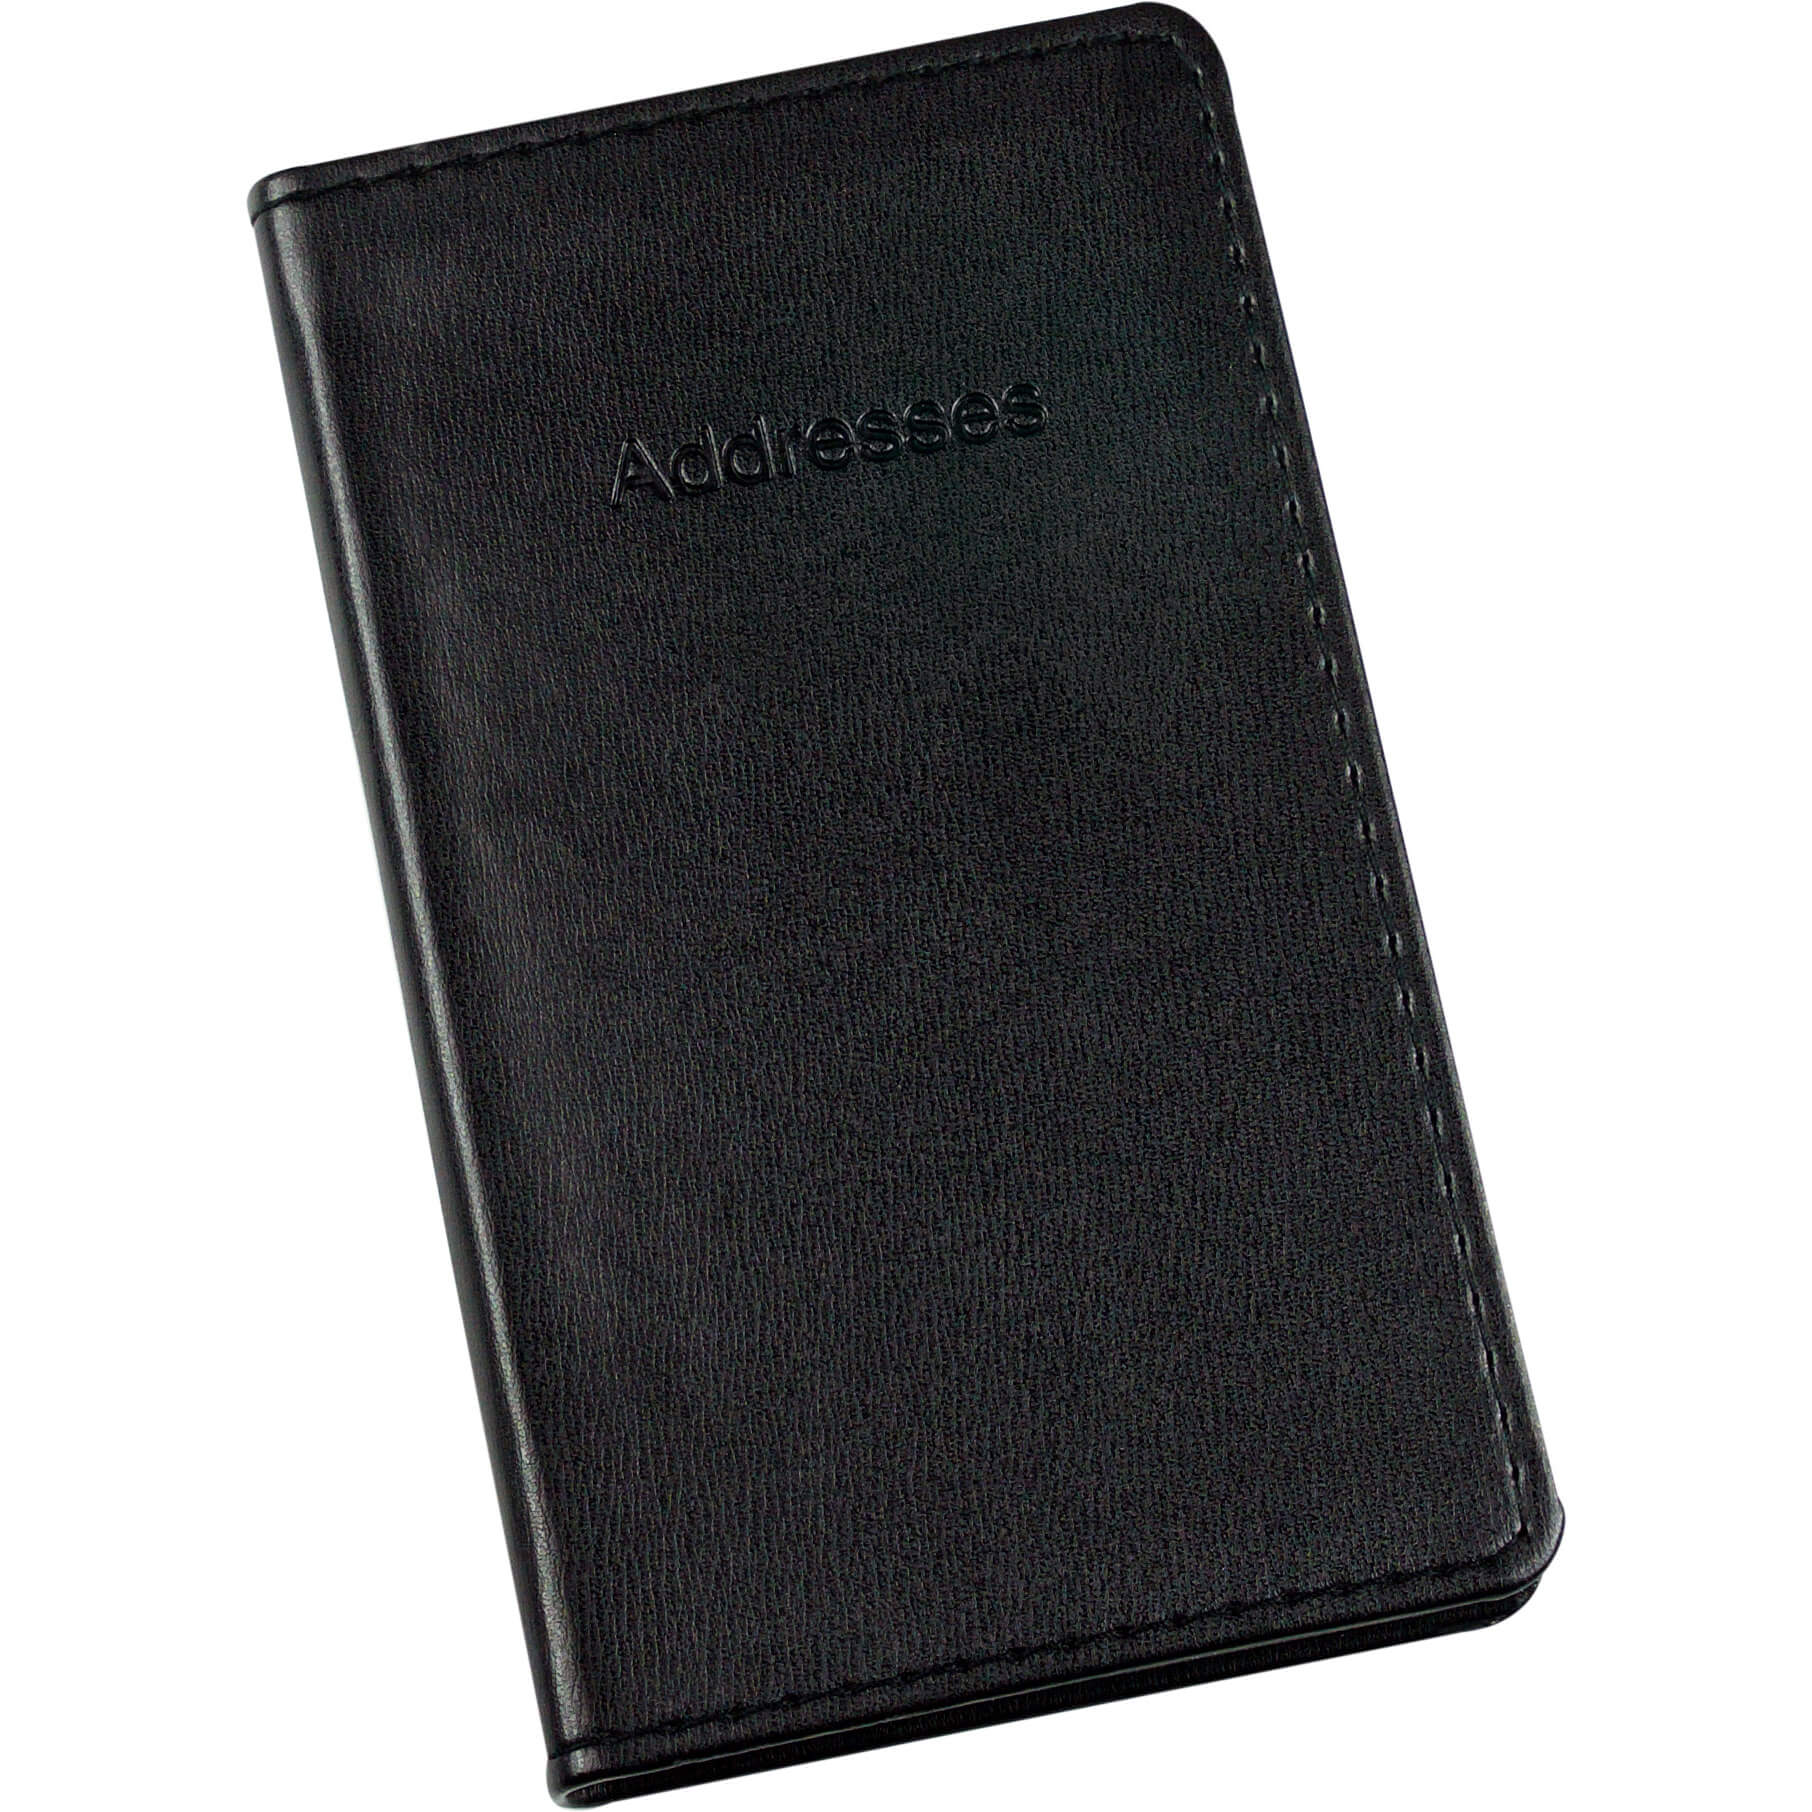 Esposti Slim Address Book With Stitched Leather Feel Cover - Black - Size 85 x 148mm